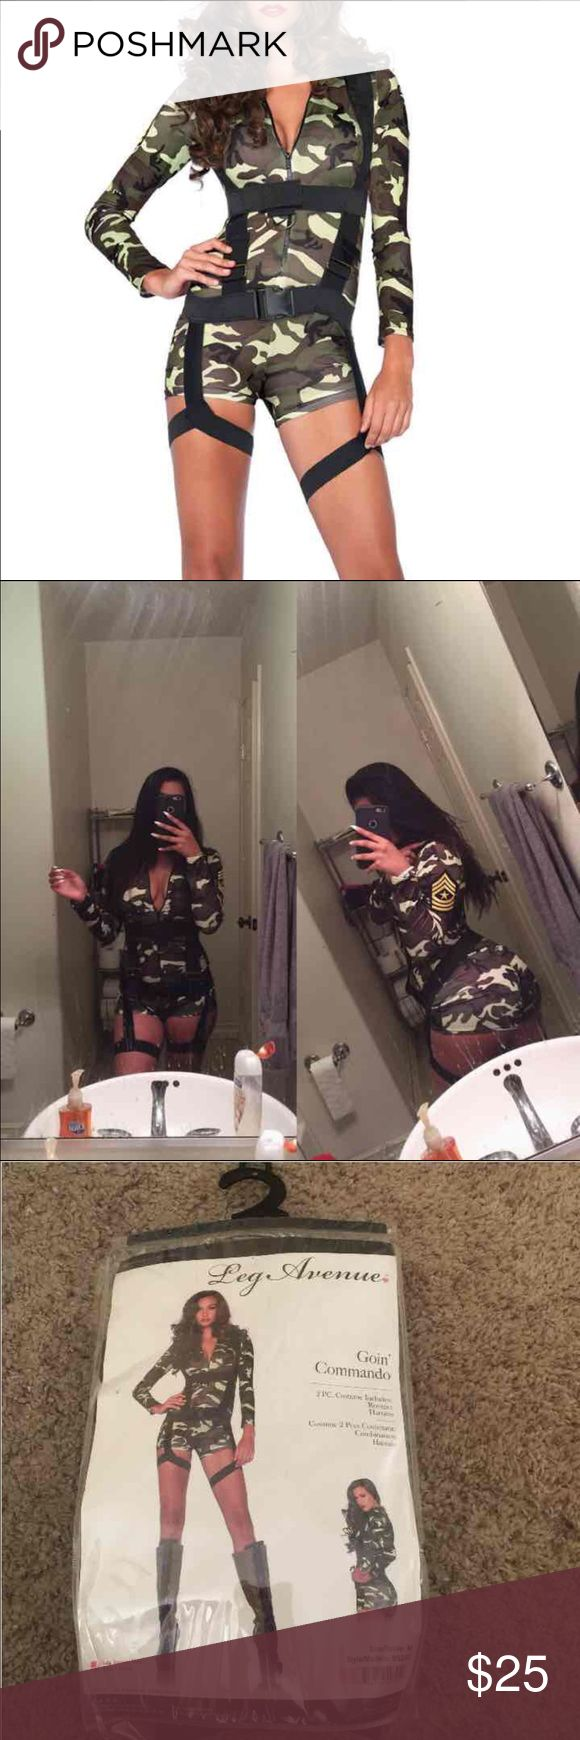 army girl costume army girl Halloween costume includes romper and harness only tried on super cute but got another costume leg avenue Other